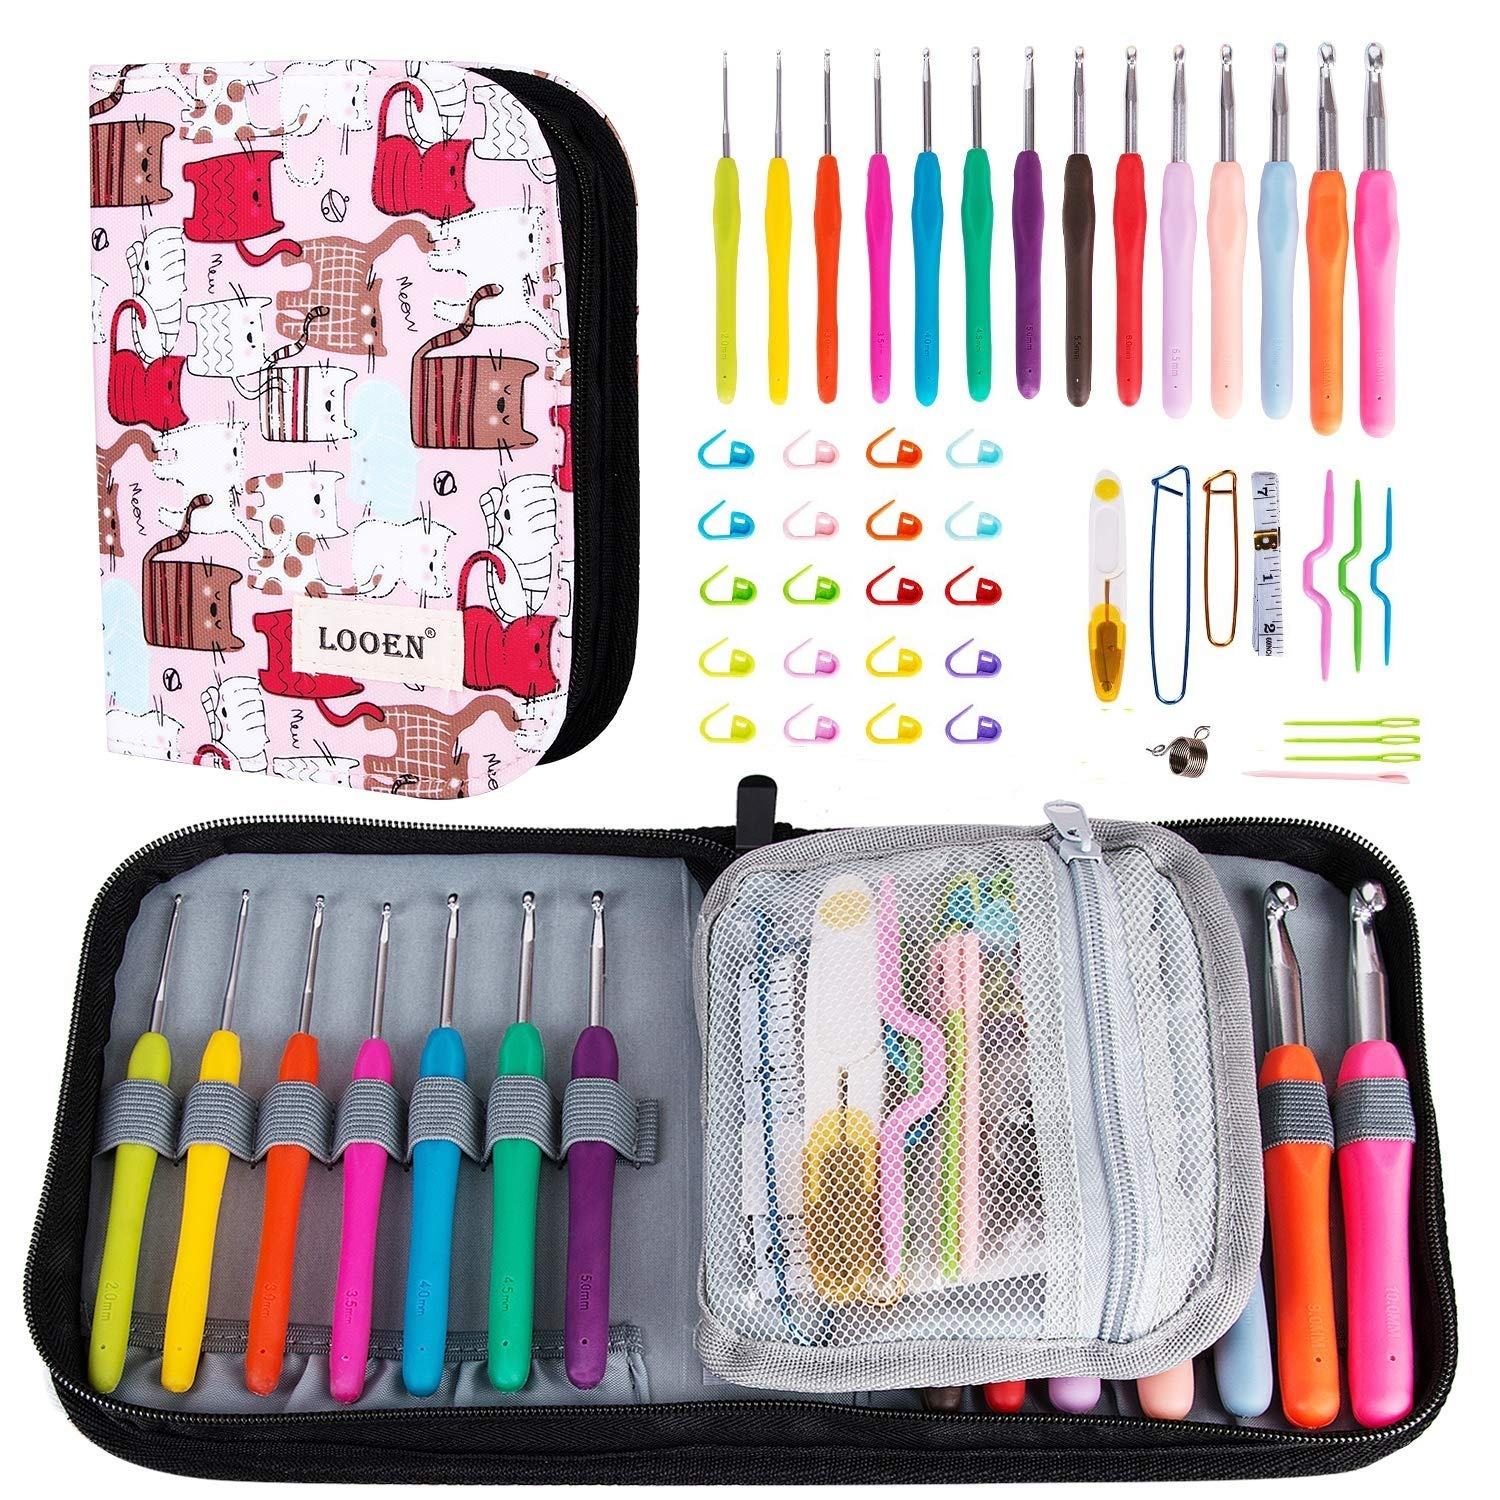 K Kwokker 48 Pieces Ergonomic Crochet Hooks Set with Cartoon Cat Case Grip Crochet Kit and Accessories for Beginners and Crocheters, Complete Accessories, Small Volume and Convenient to Carry, Pink by K Kwokker (Image #1)